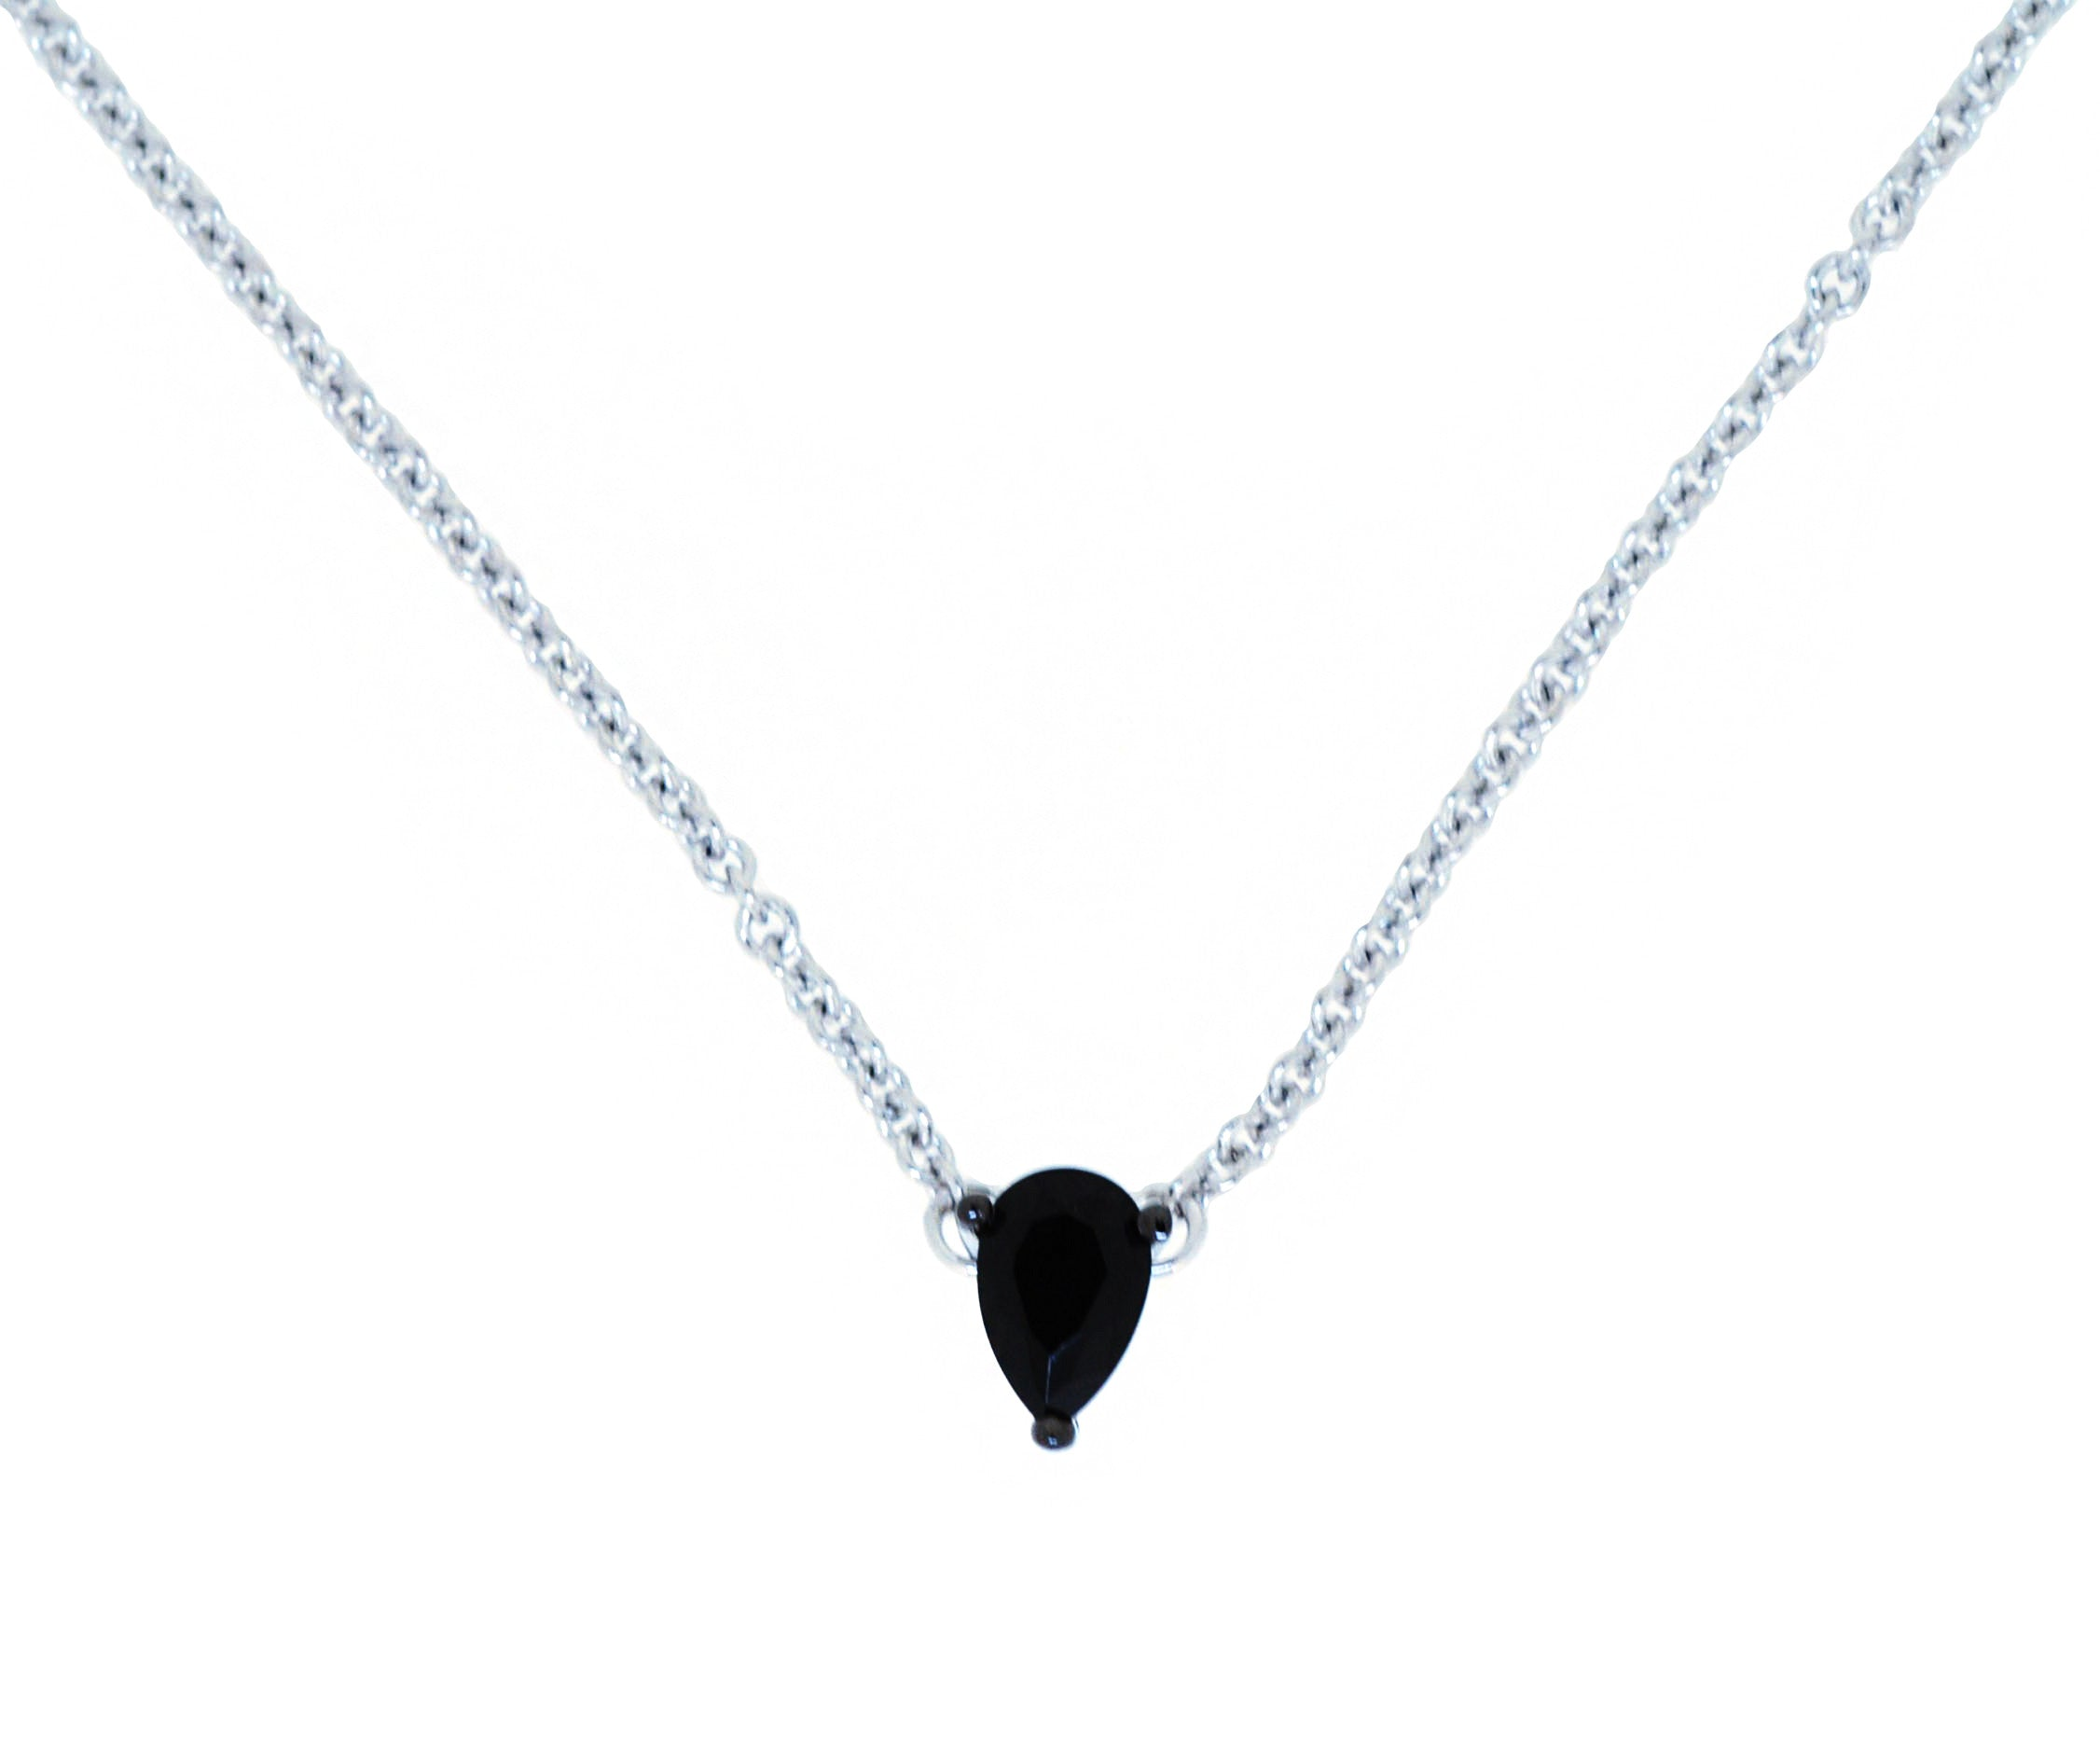 pear pendant shaped htm necklace product p cute